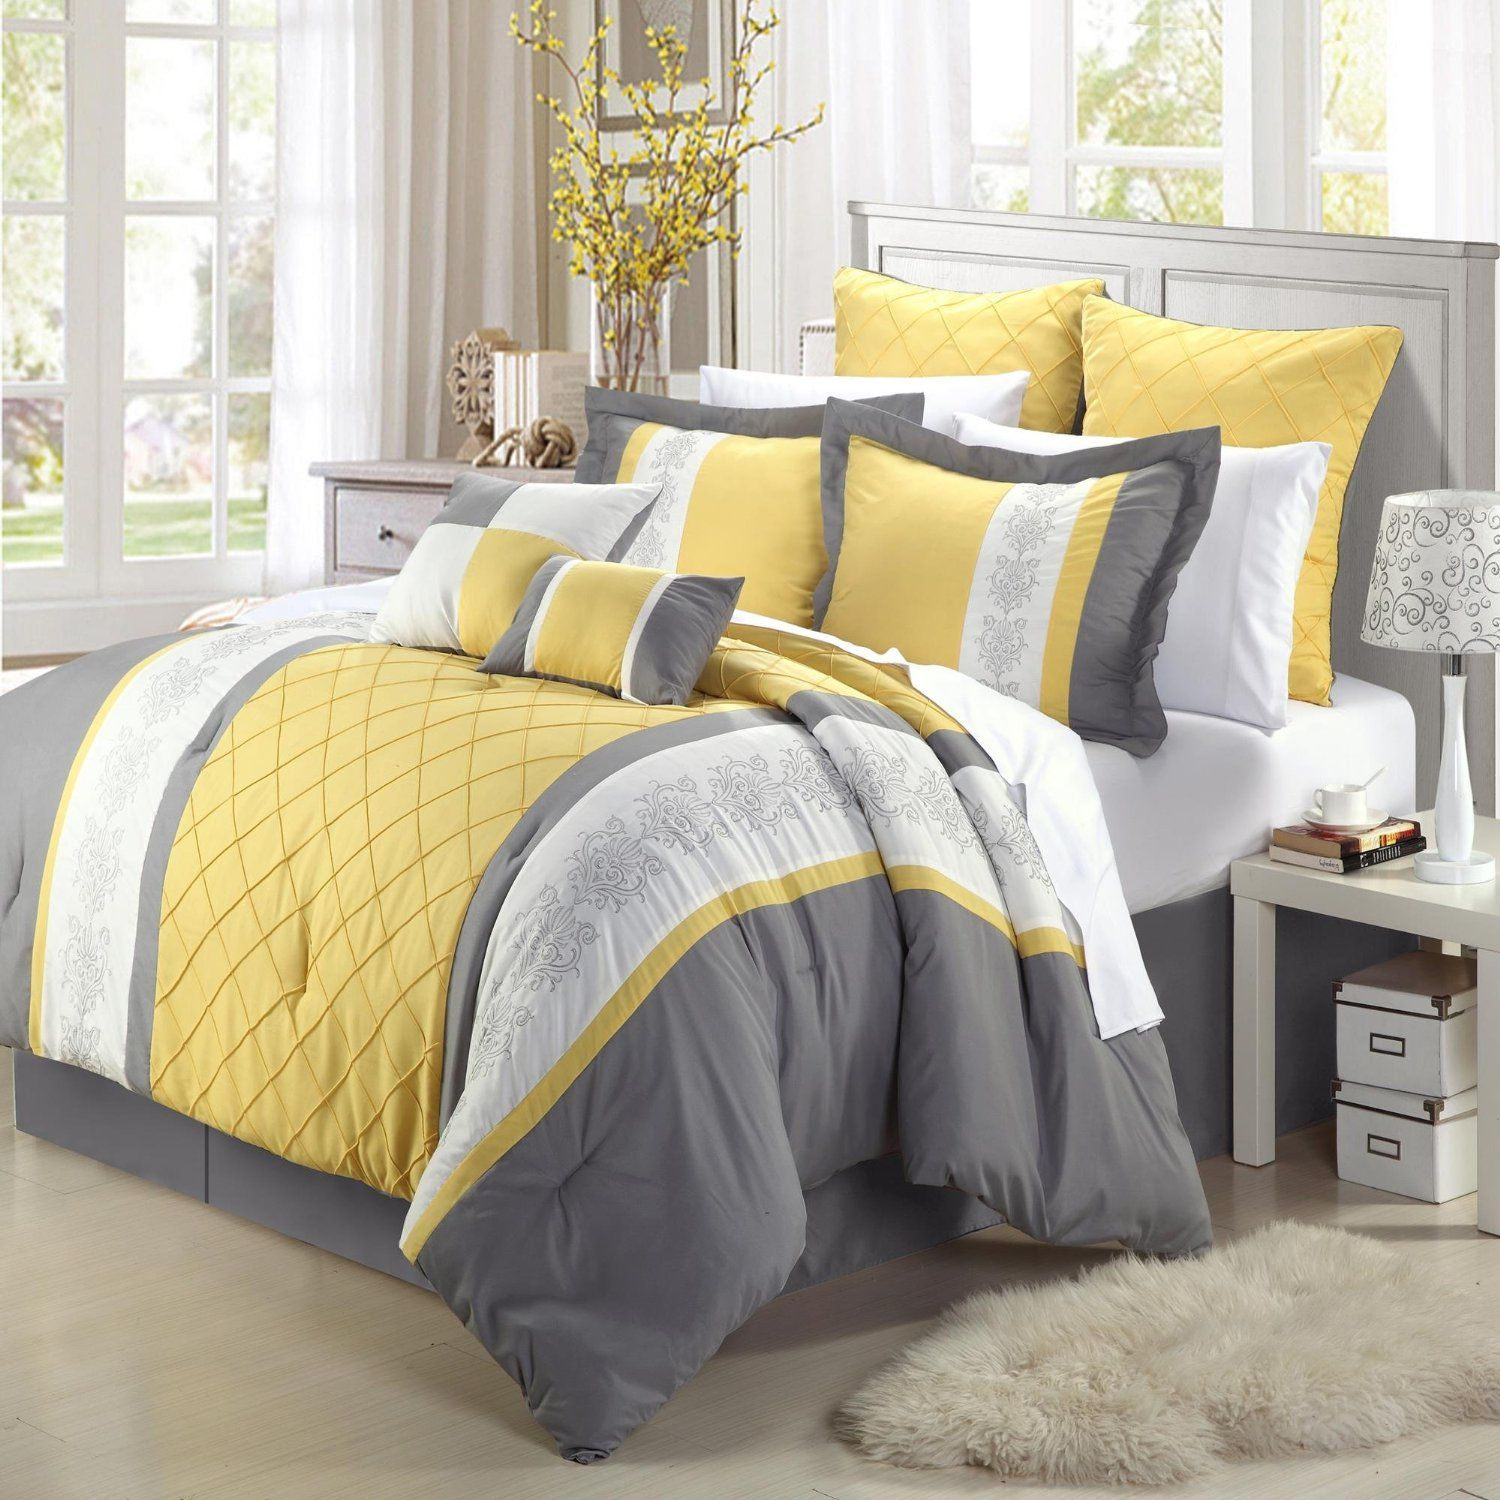 bedroom your bedrooms will pop make pin yellow gray that bedding comforter and